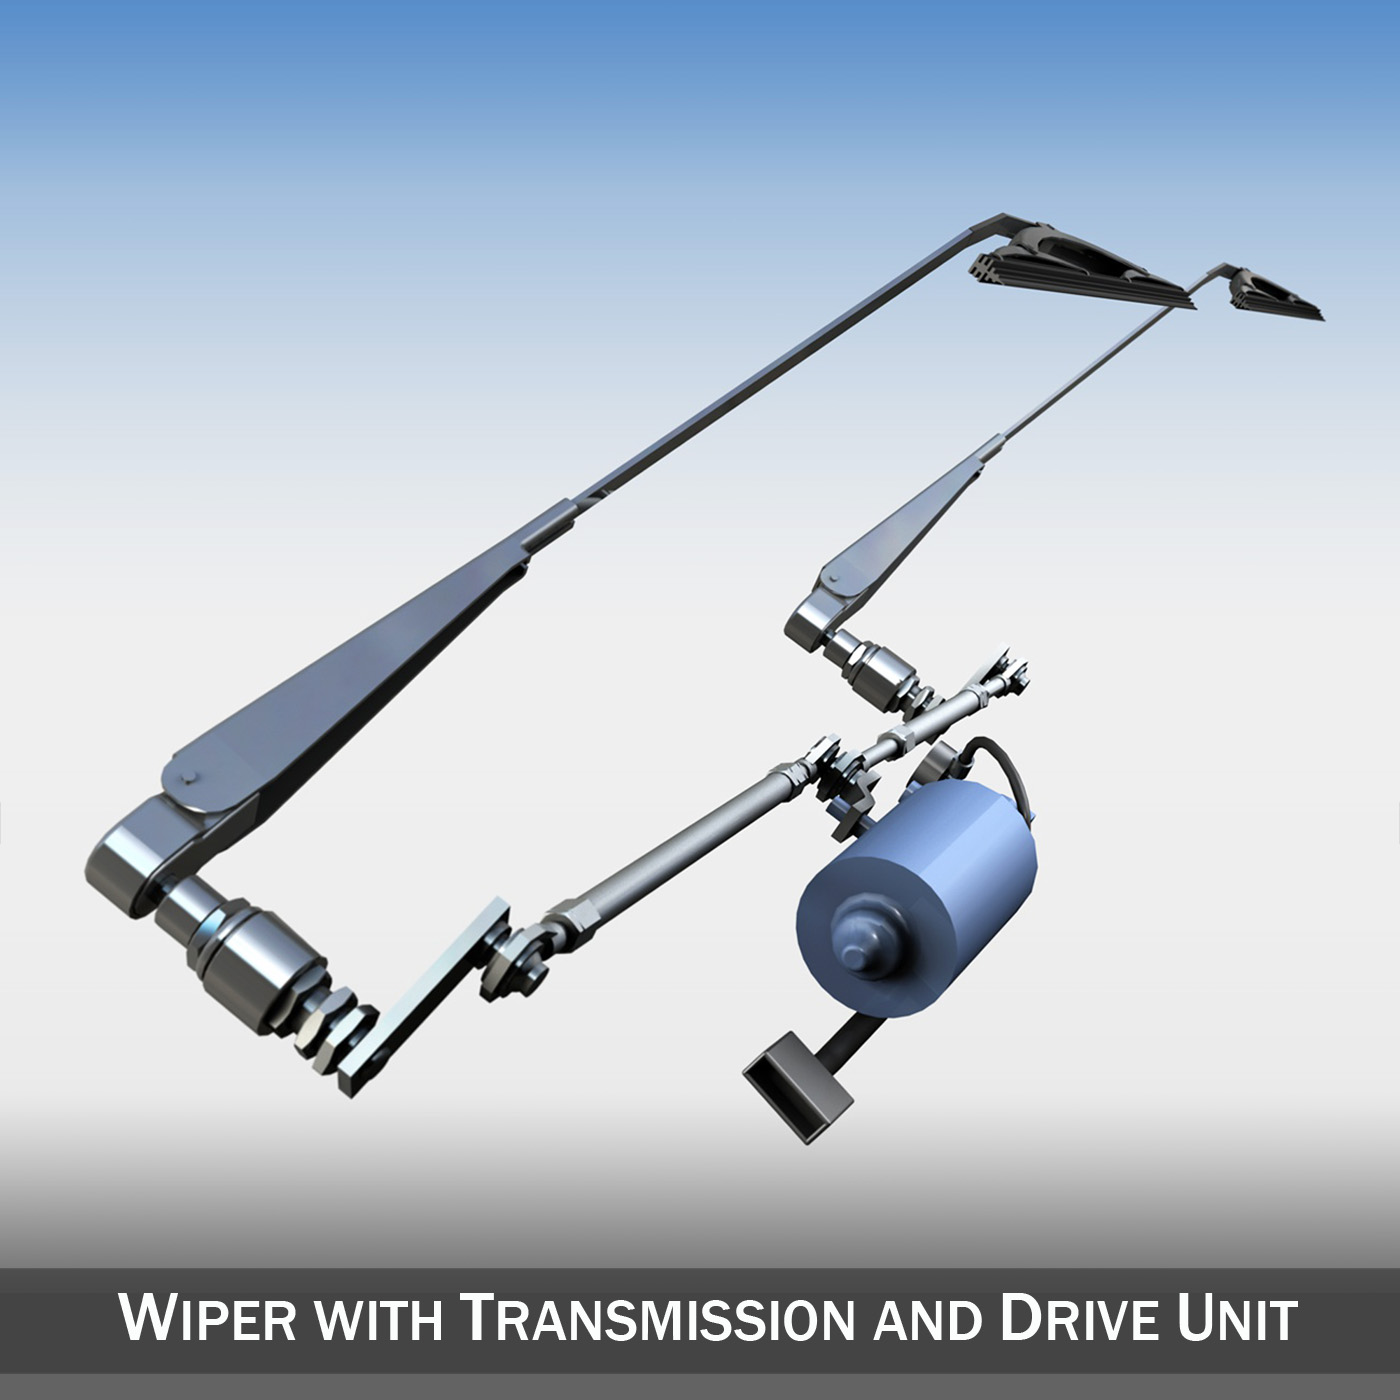 wiper with transmission and drive unit 3d model 3ds fbx c4d lwo obj 189155